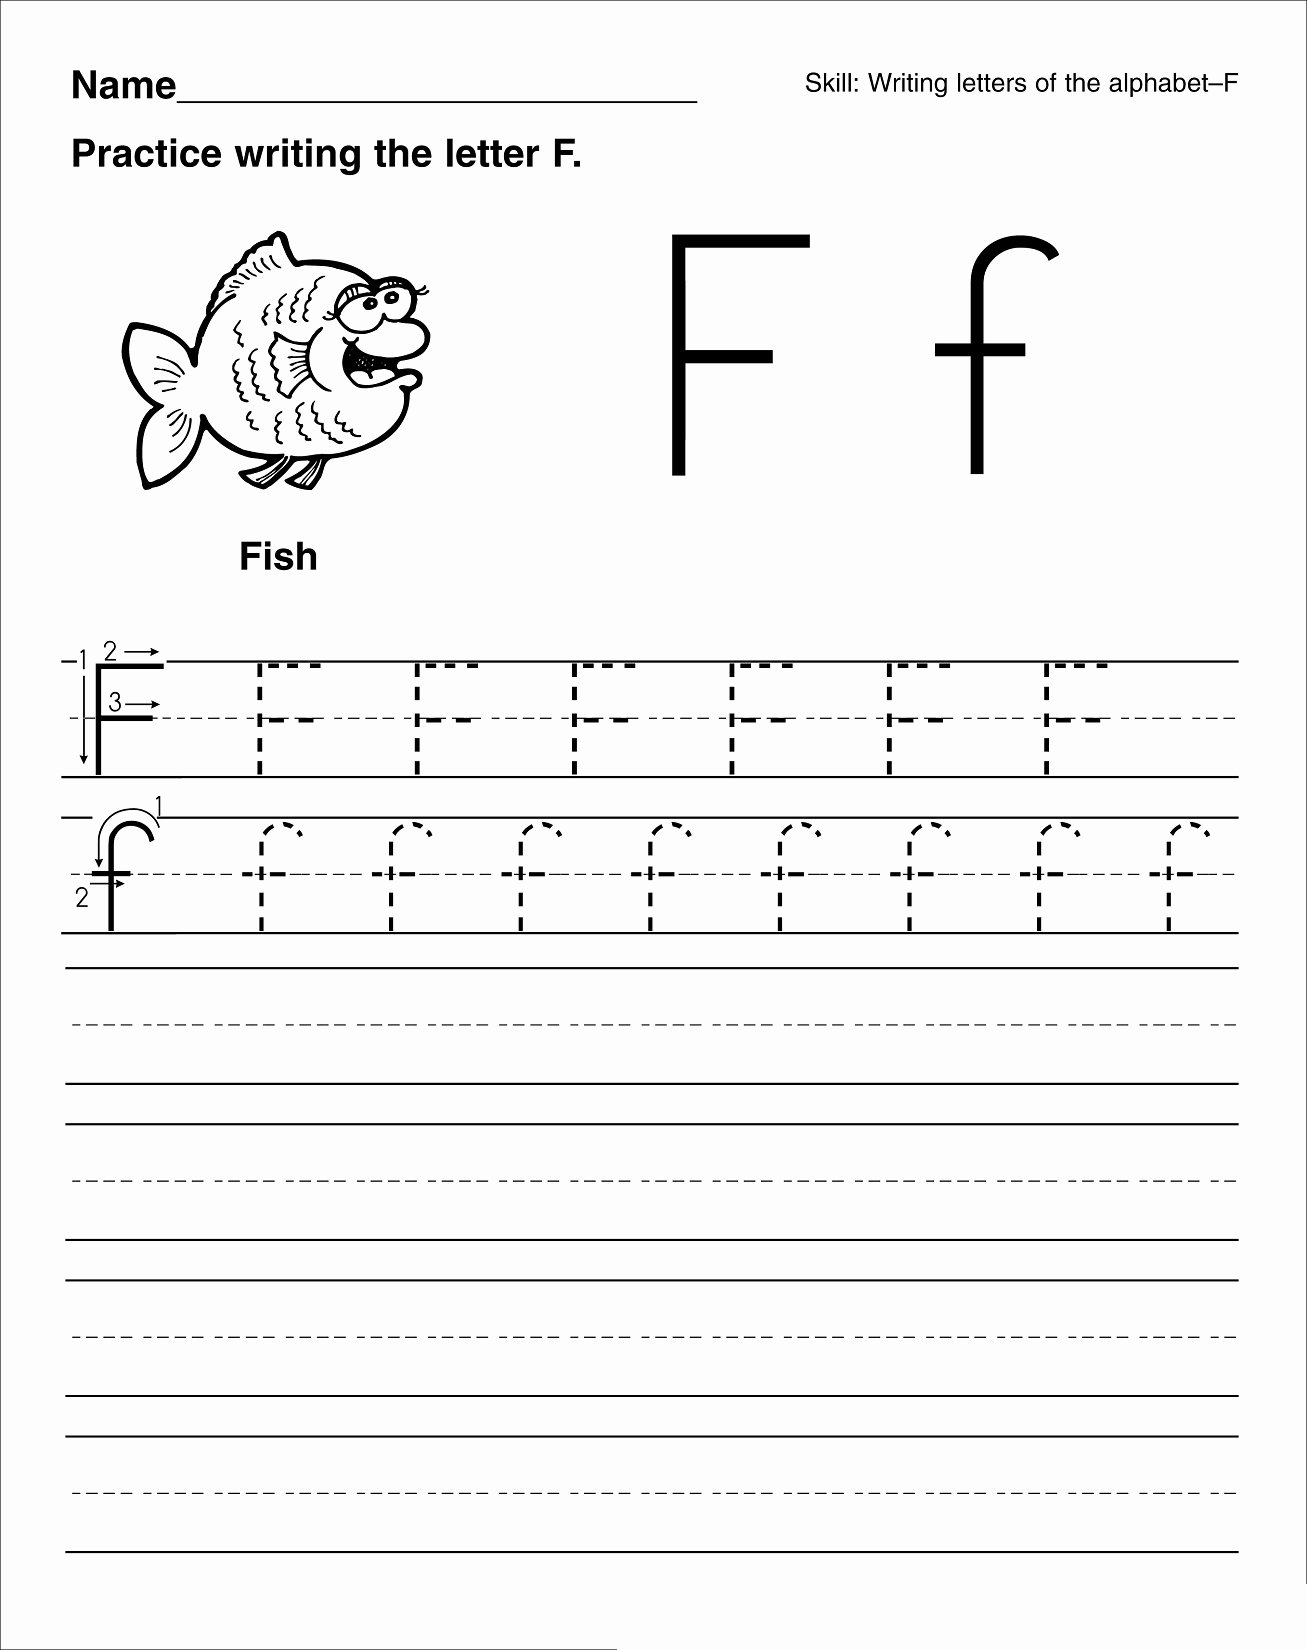 Practice Letter Worksheets for Preschoolers Beautiful Worksheets Math Worksheet Printing Letters Worksheets